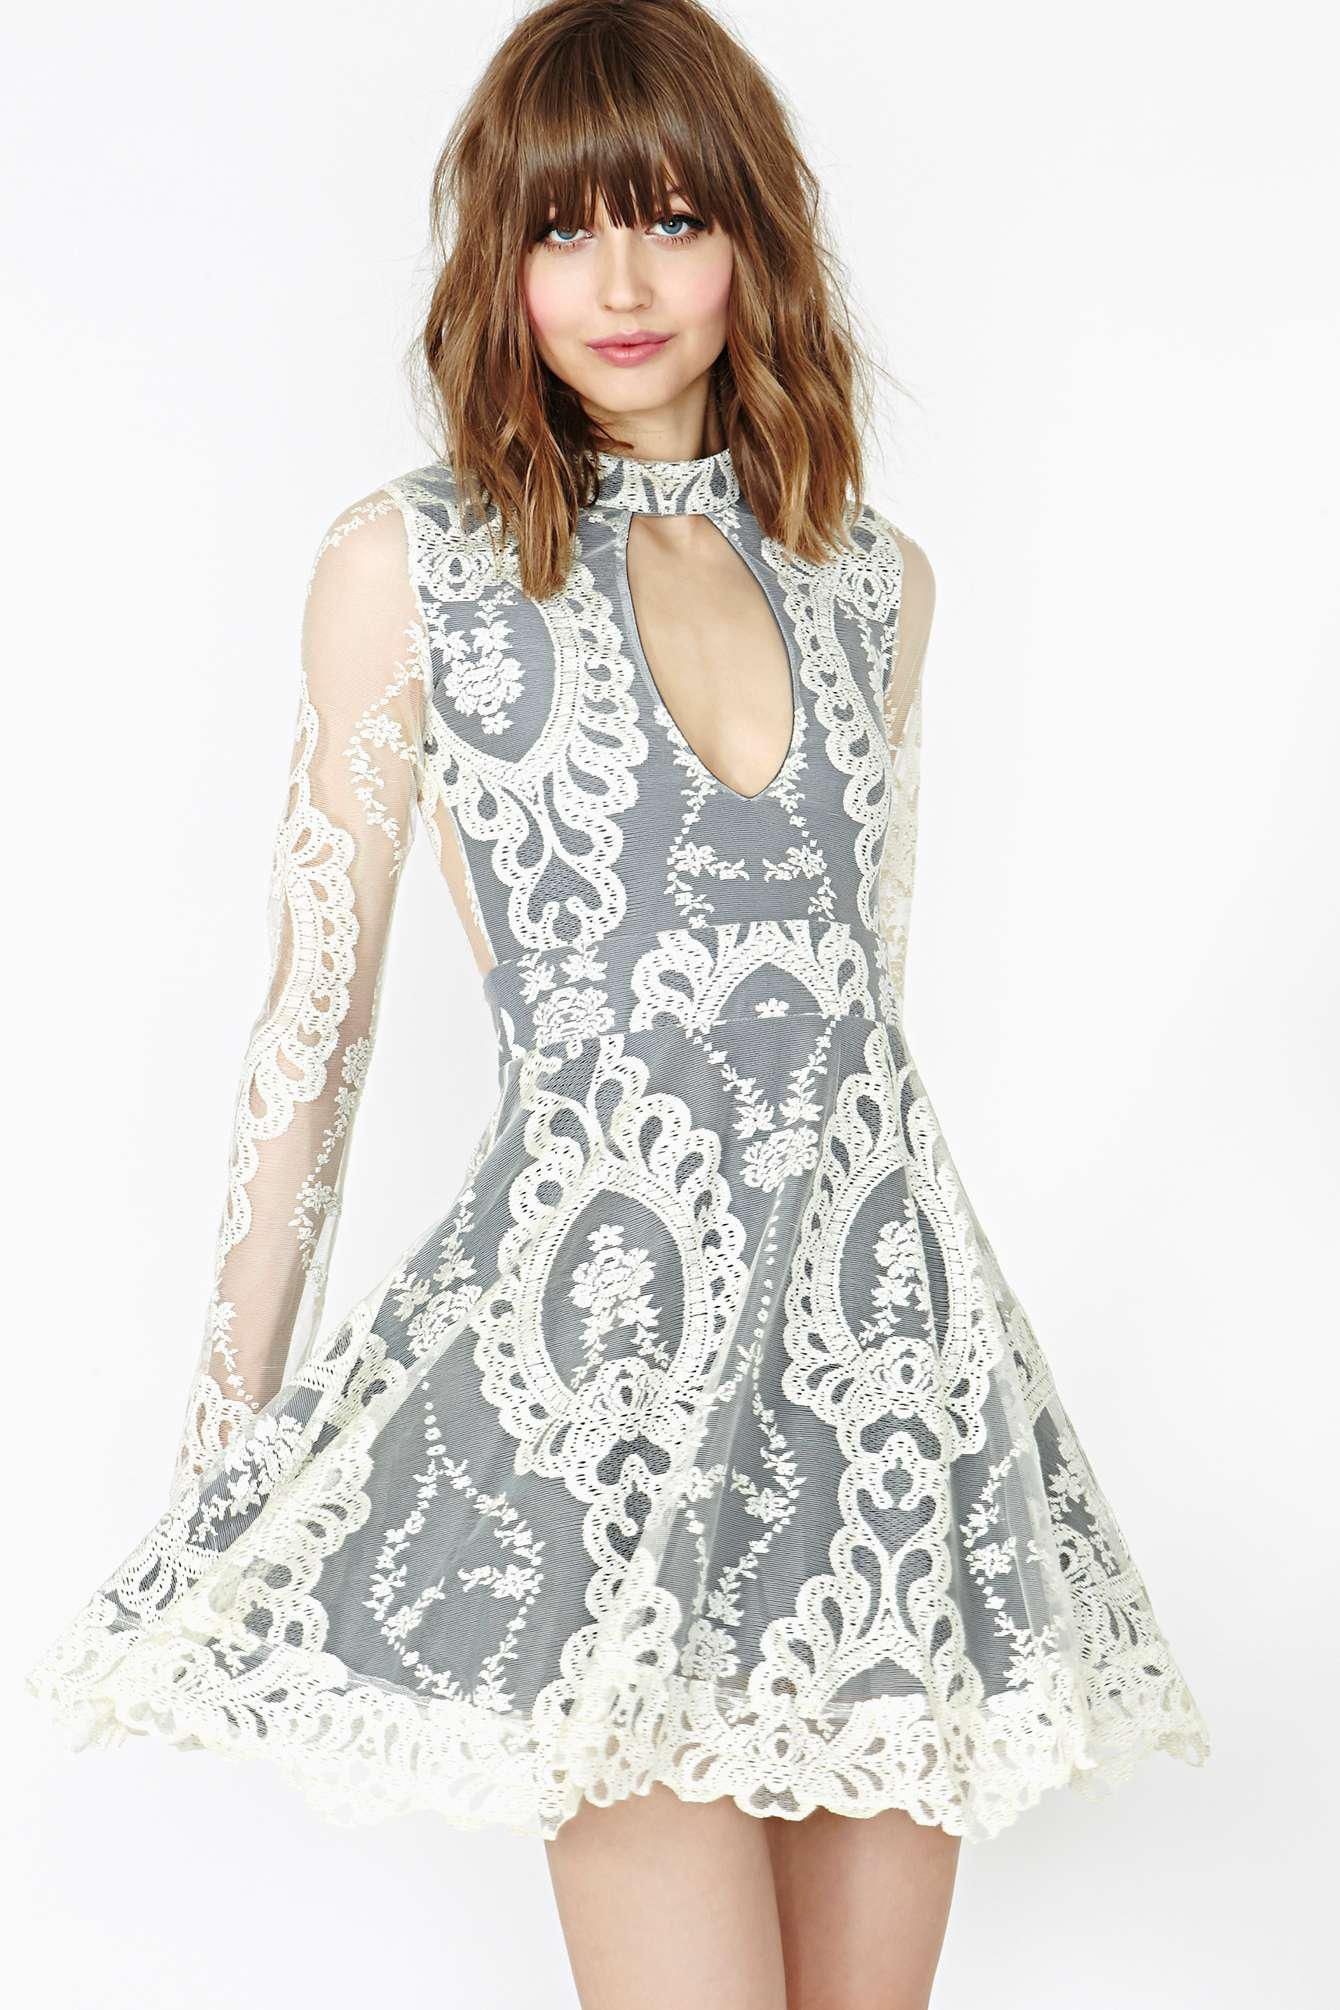 Super cute ivory lace dress featuring a gray underlay and high